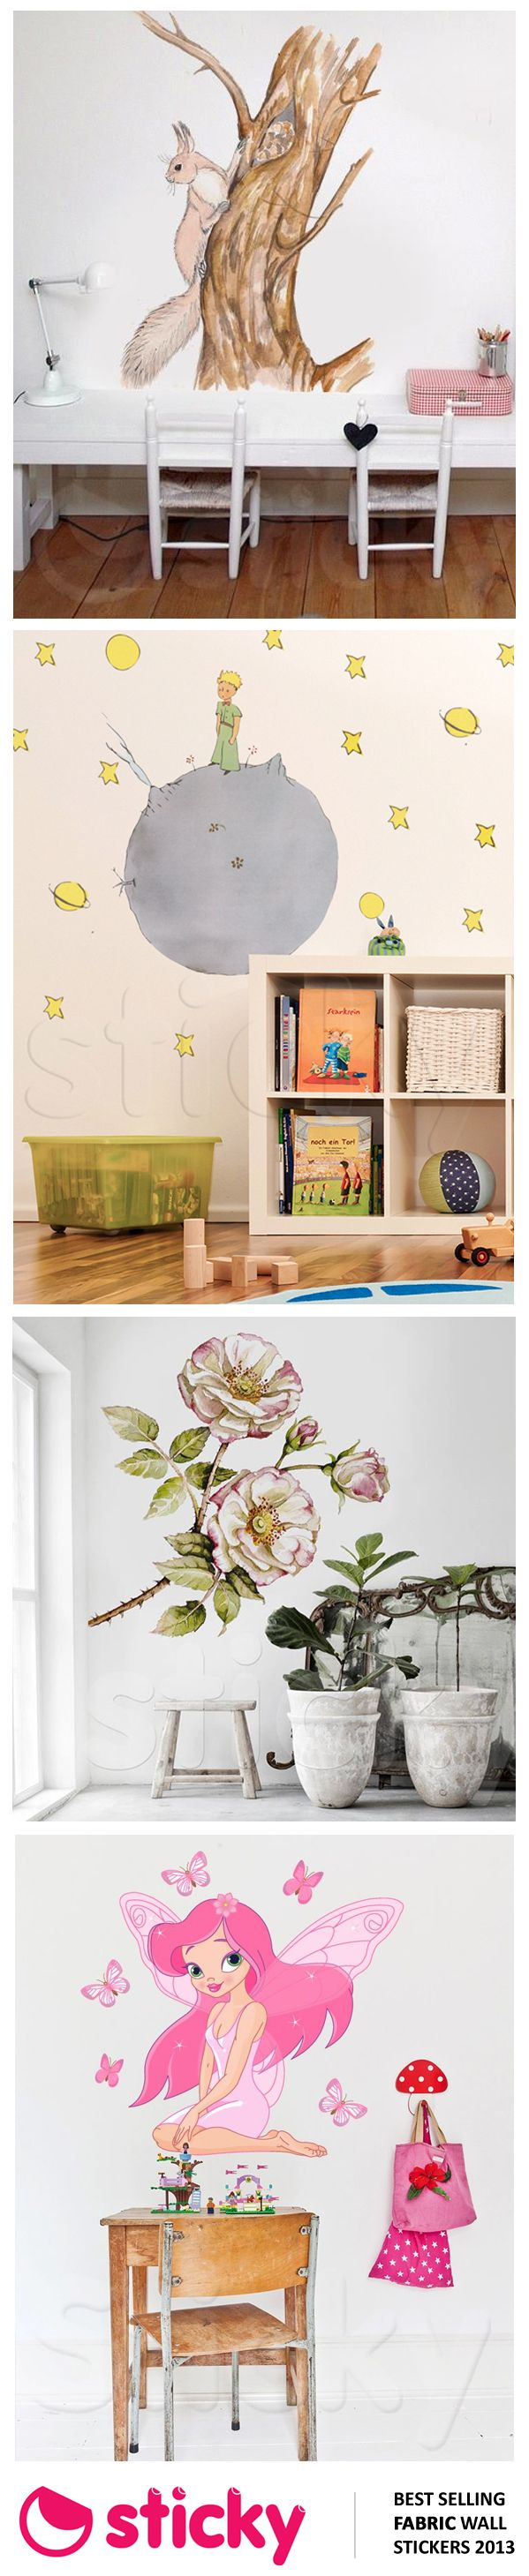 STICKY - Our best selling FABRIC wall stickers for 2013 based on sales!